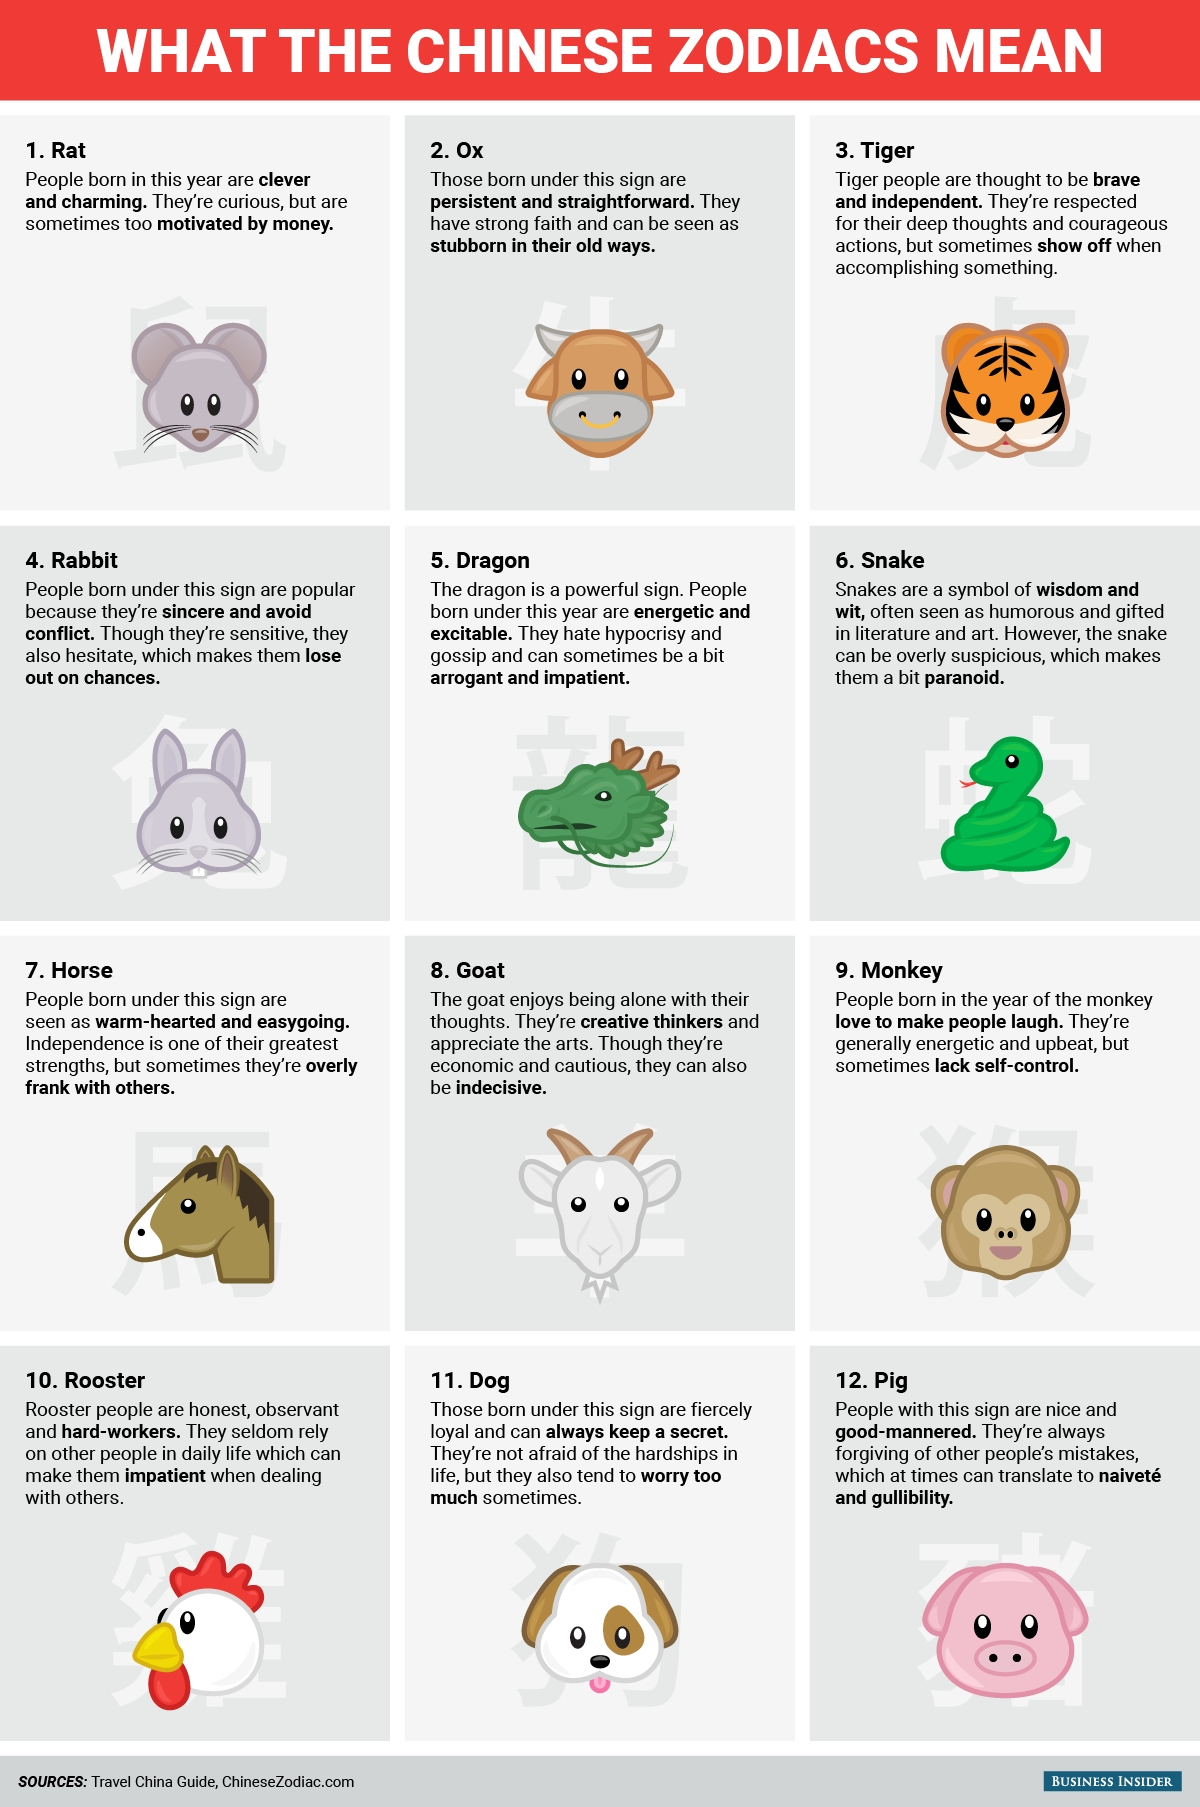 Happy Chinese New Year! This Is What The Chinese Zodiac Says